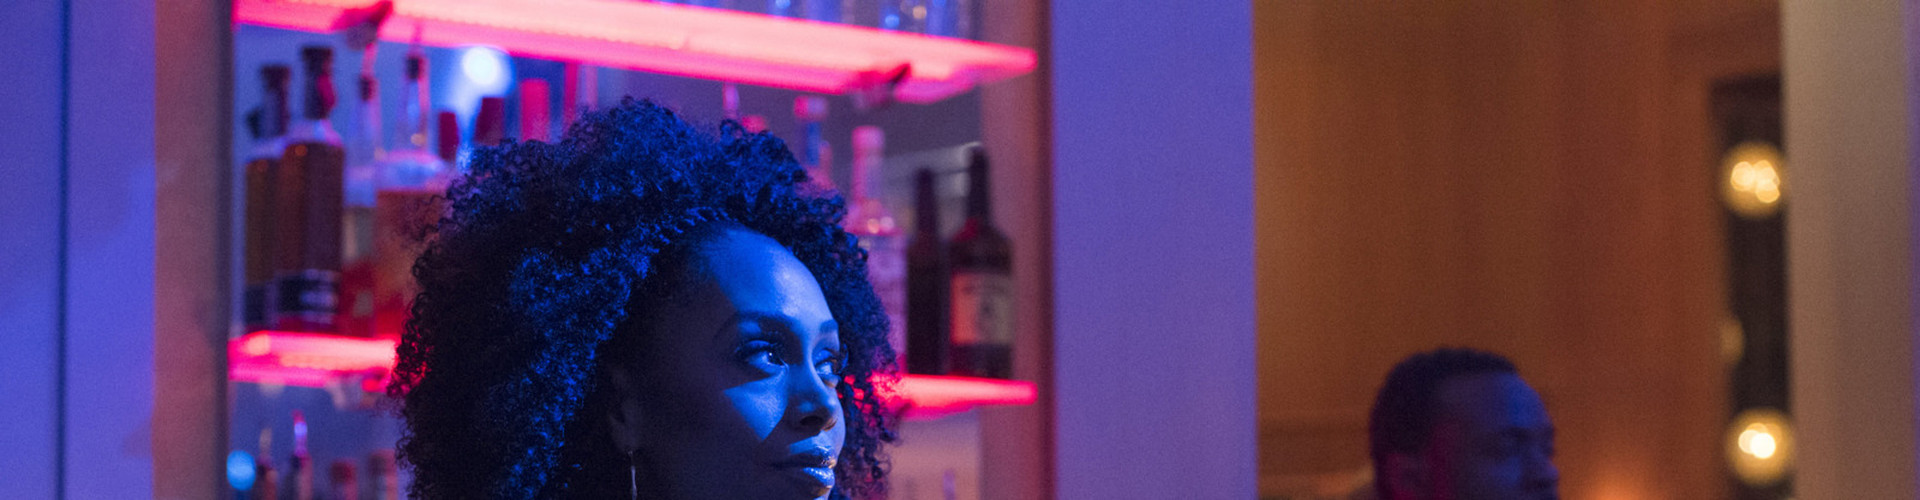 Simone Missick as Misty Knight.